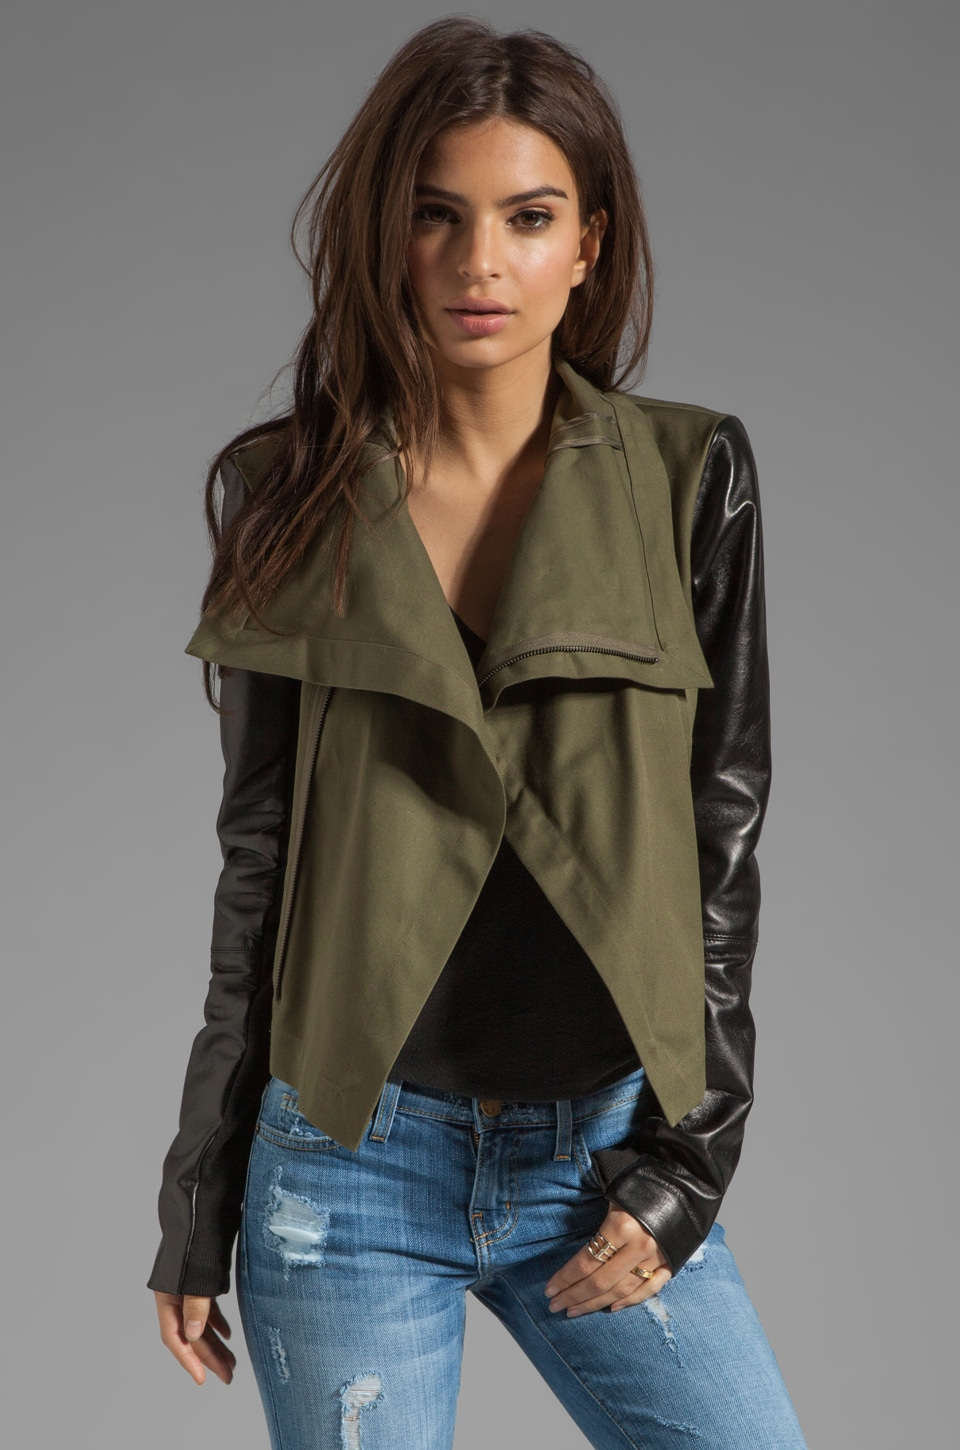 VEDA Max Army Jacket in Army/Black